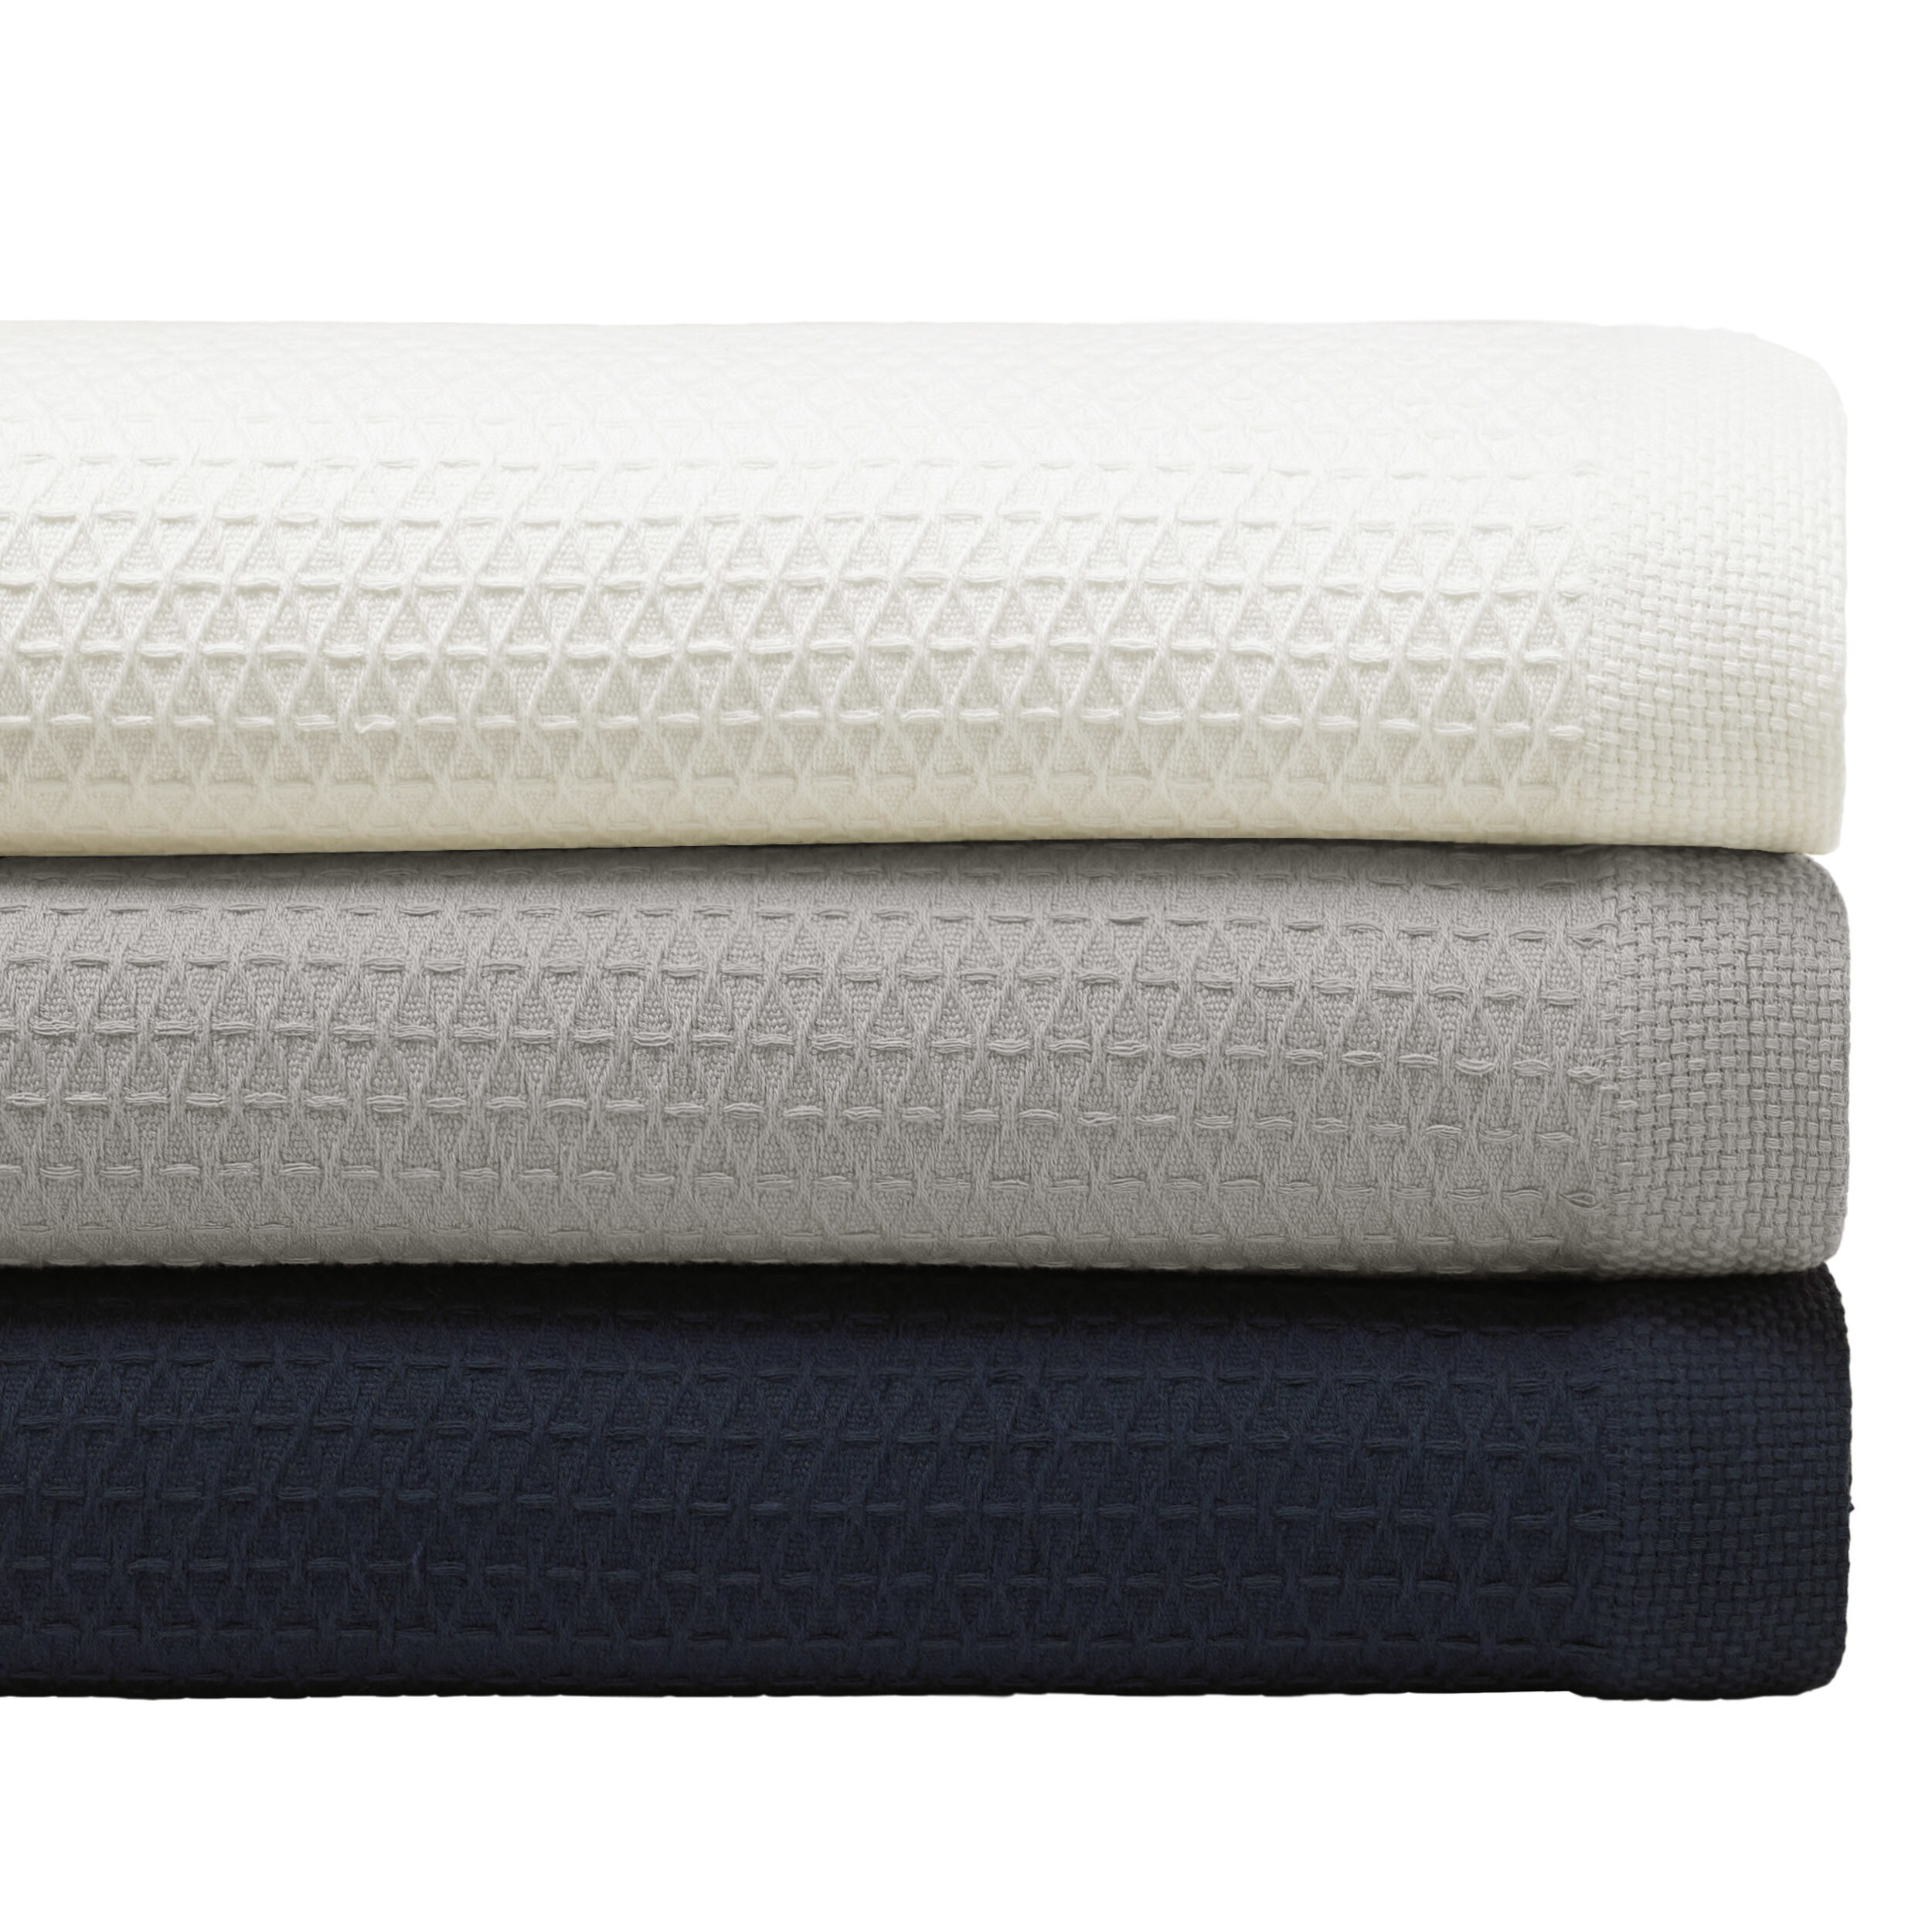 Shop Nautica Baird Diamond Knit Cotton Twill Blanket - Free Shipping ...